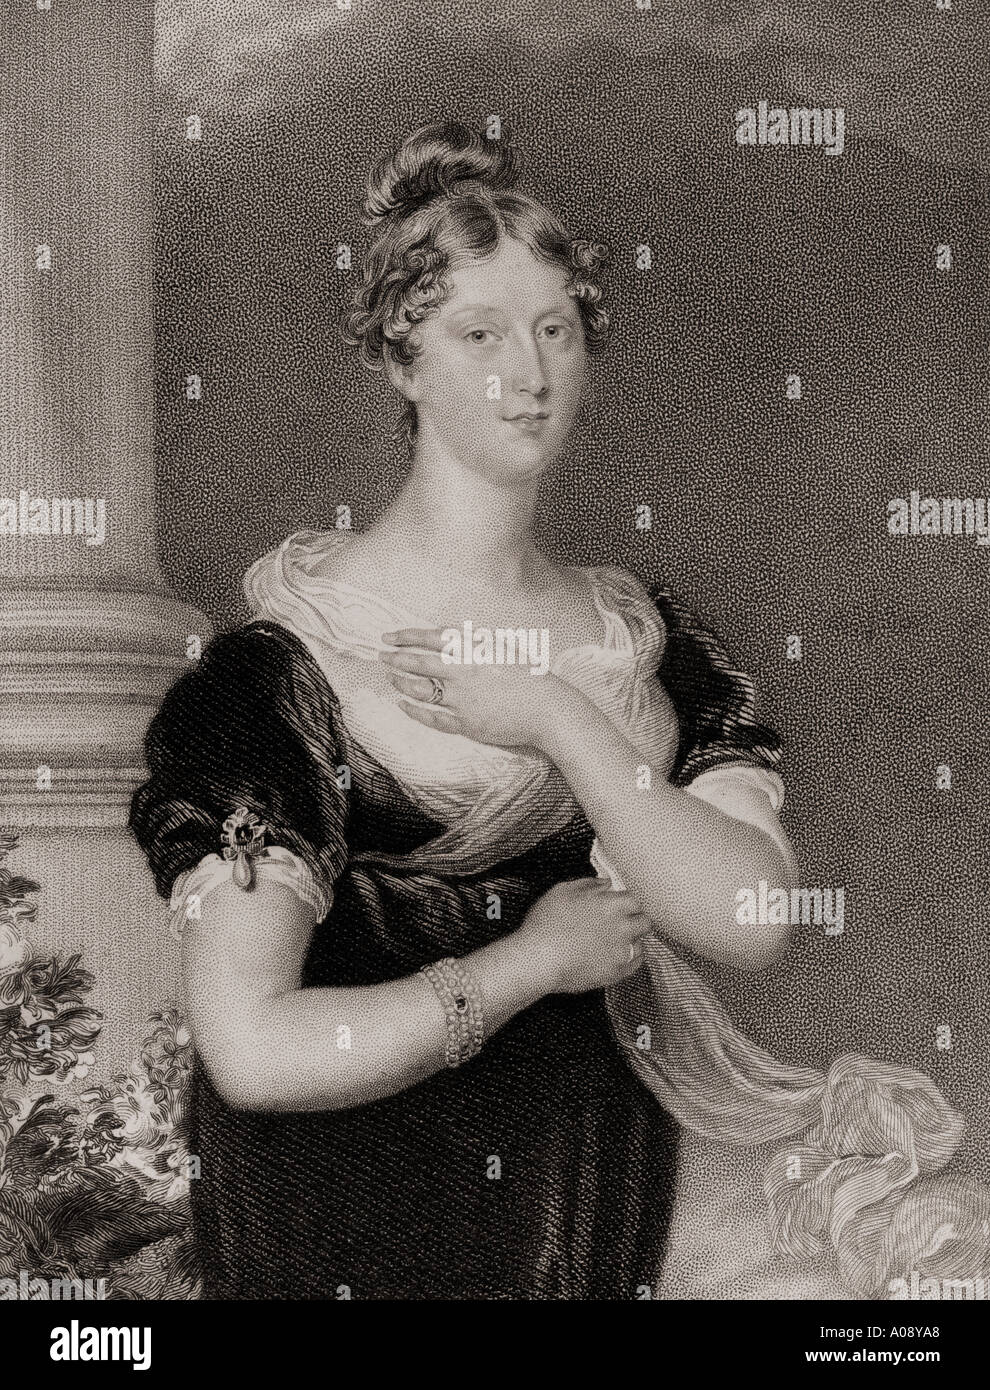 Princess Charlotte Augusta of Wales, 1796 - 1817. Daughter of George IV. - Stock Image